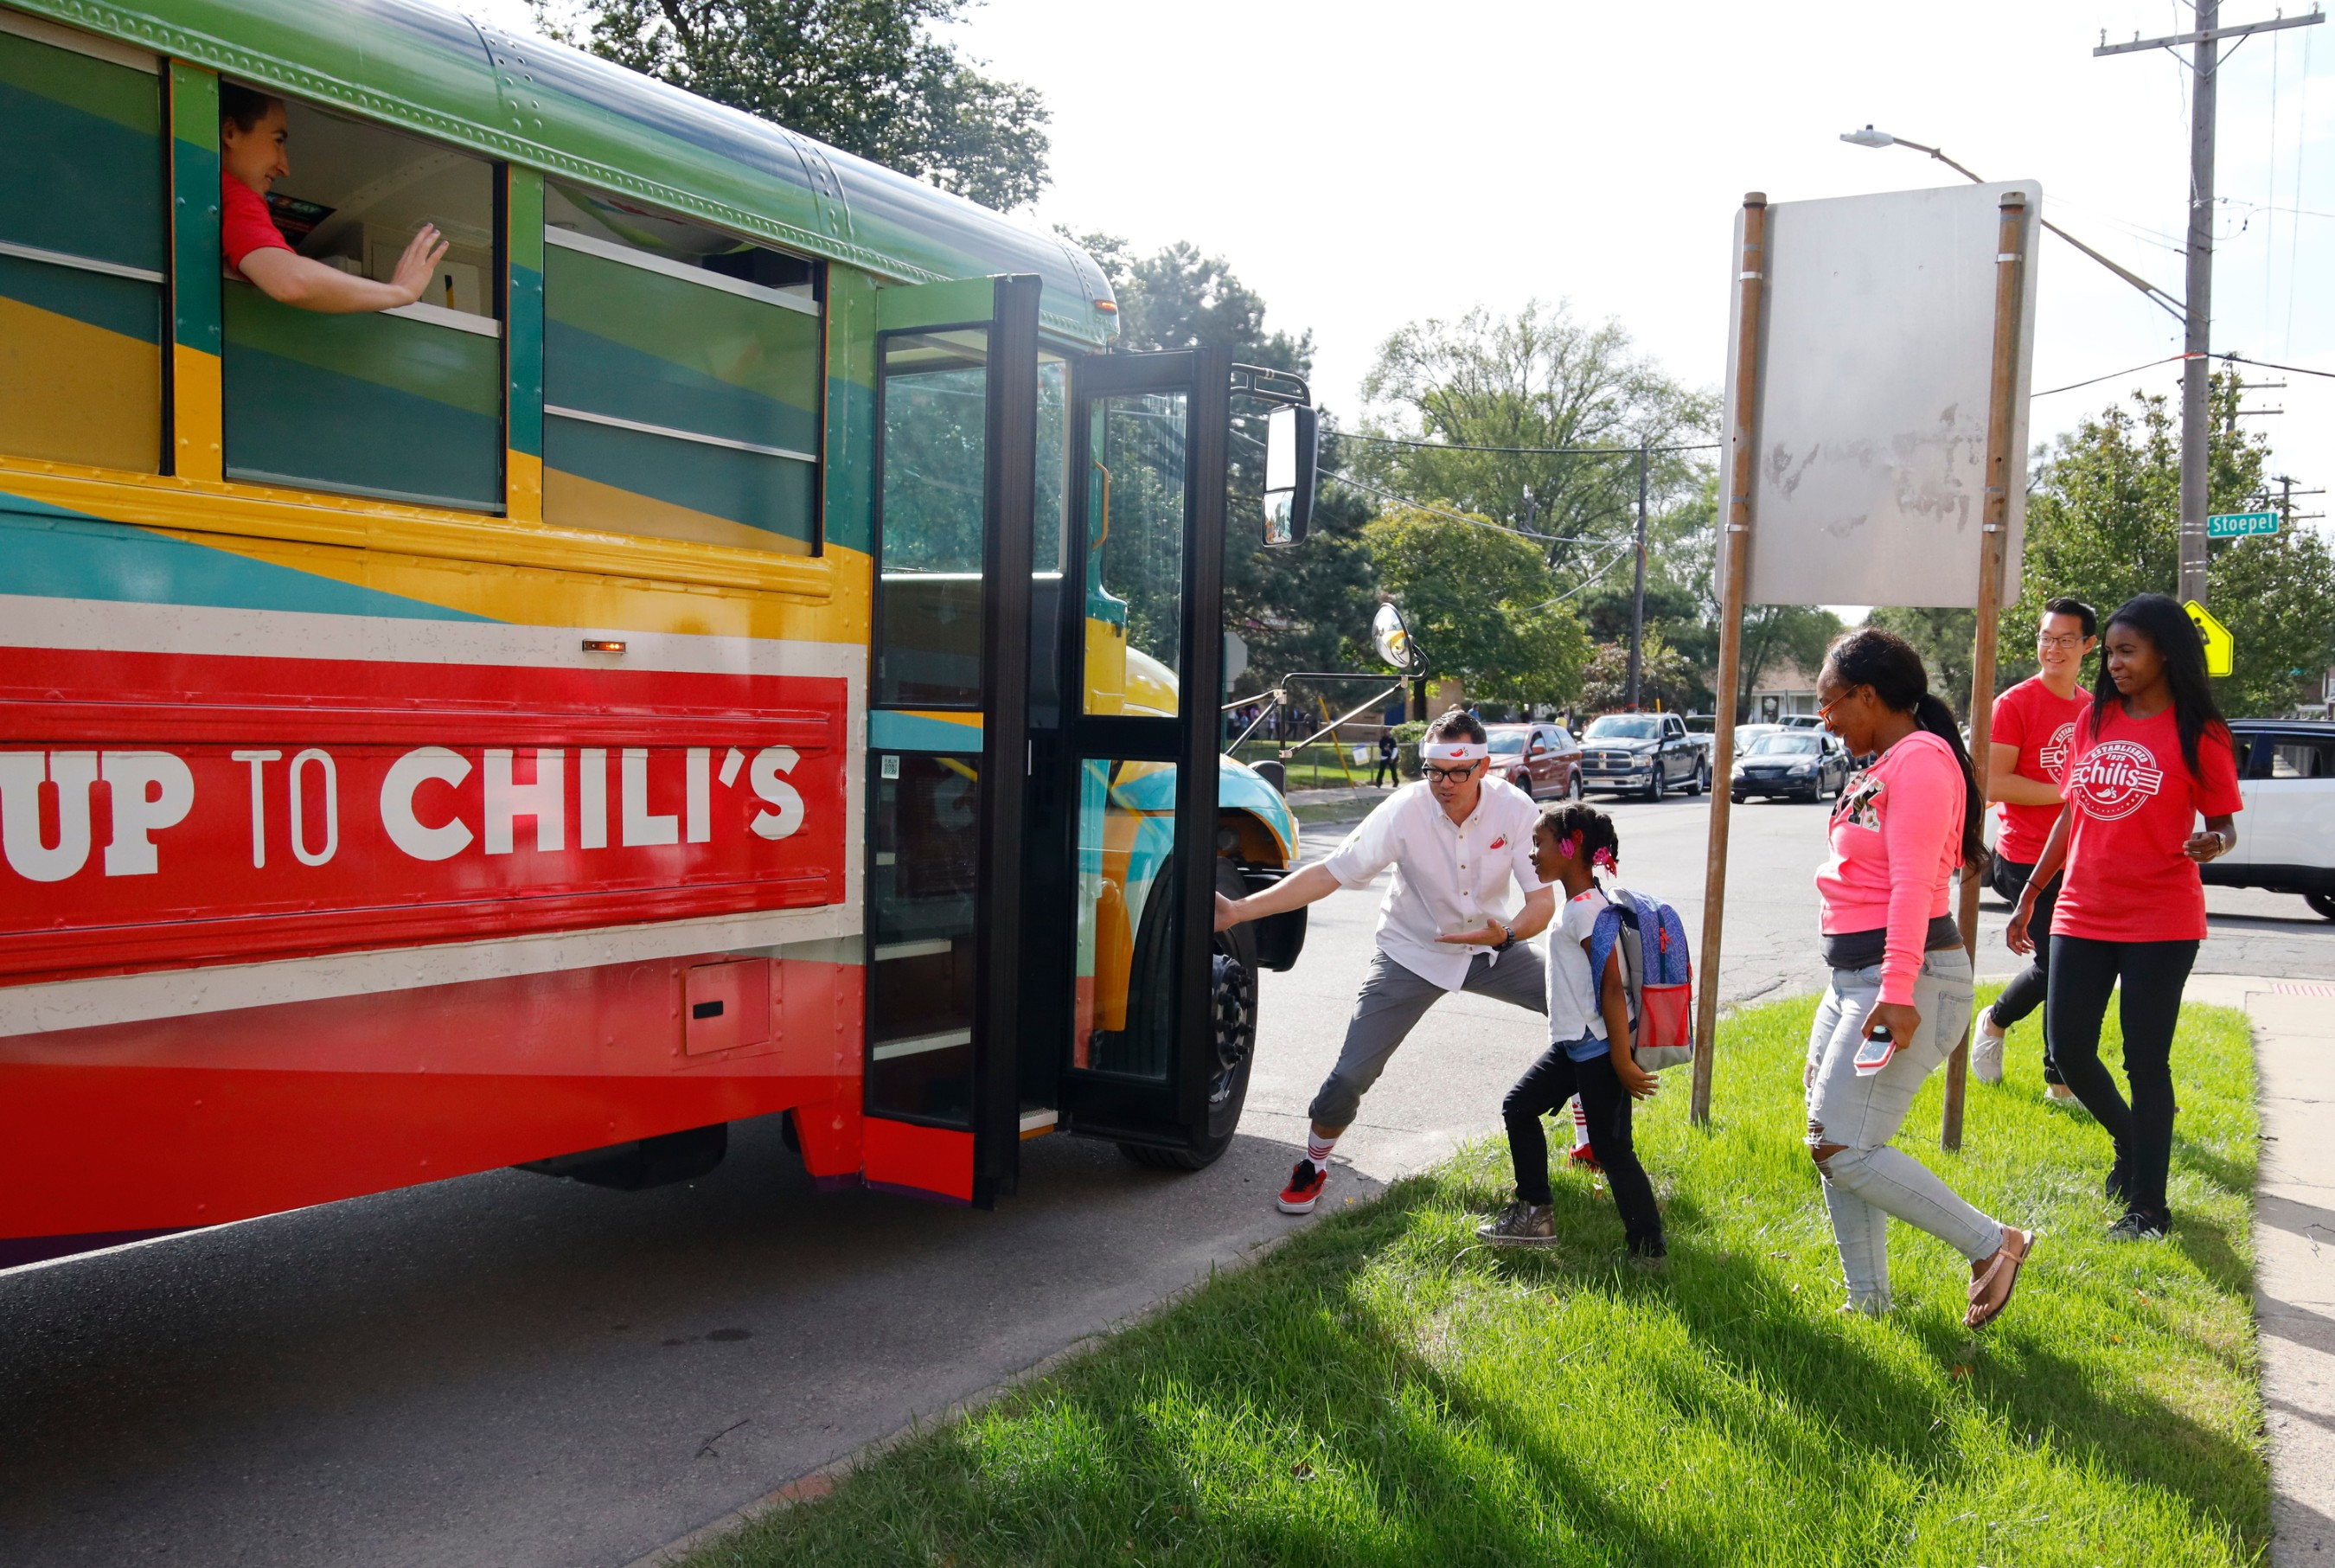 Chili's welcomes loyalty families onto the custom school bus.